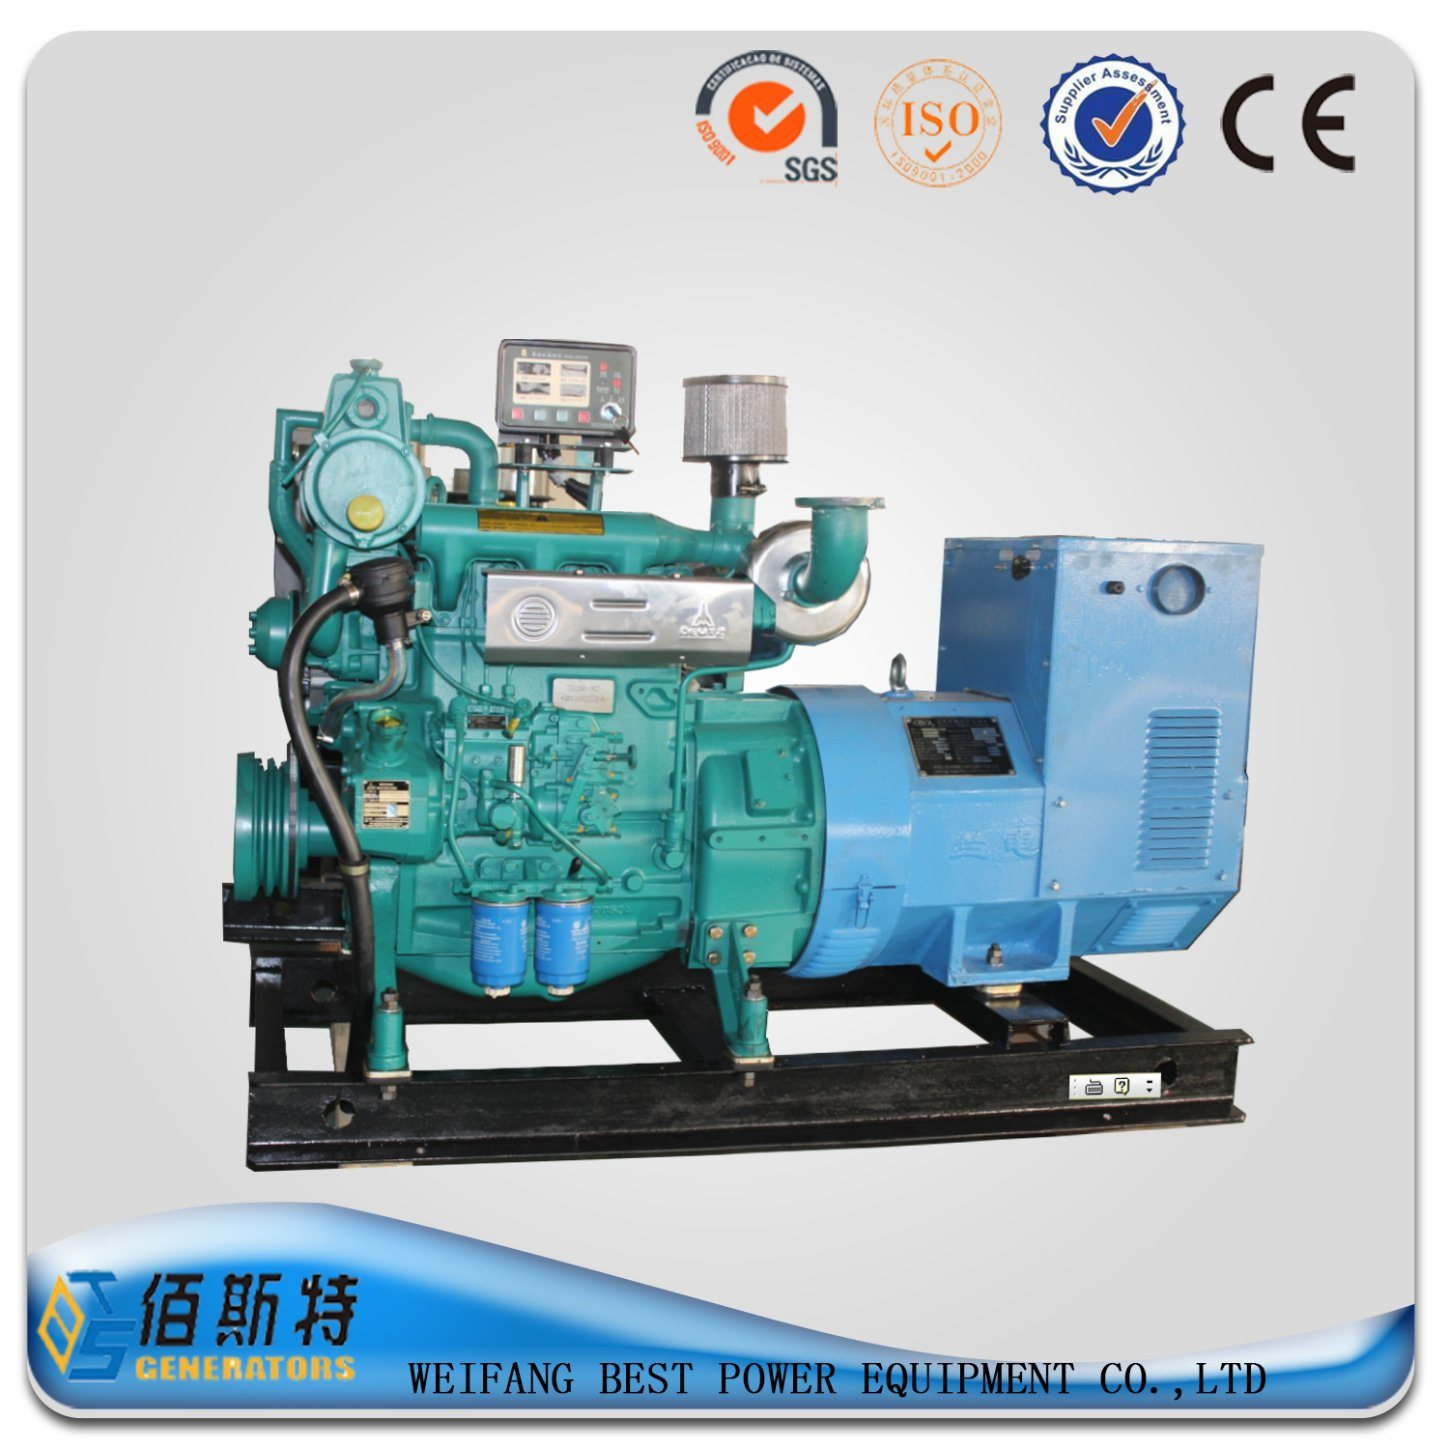 50kw China Brand Marine Diesel Electric Genset for Sale H11